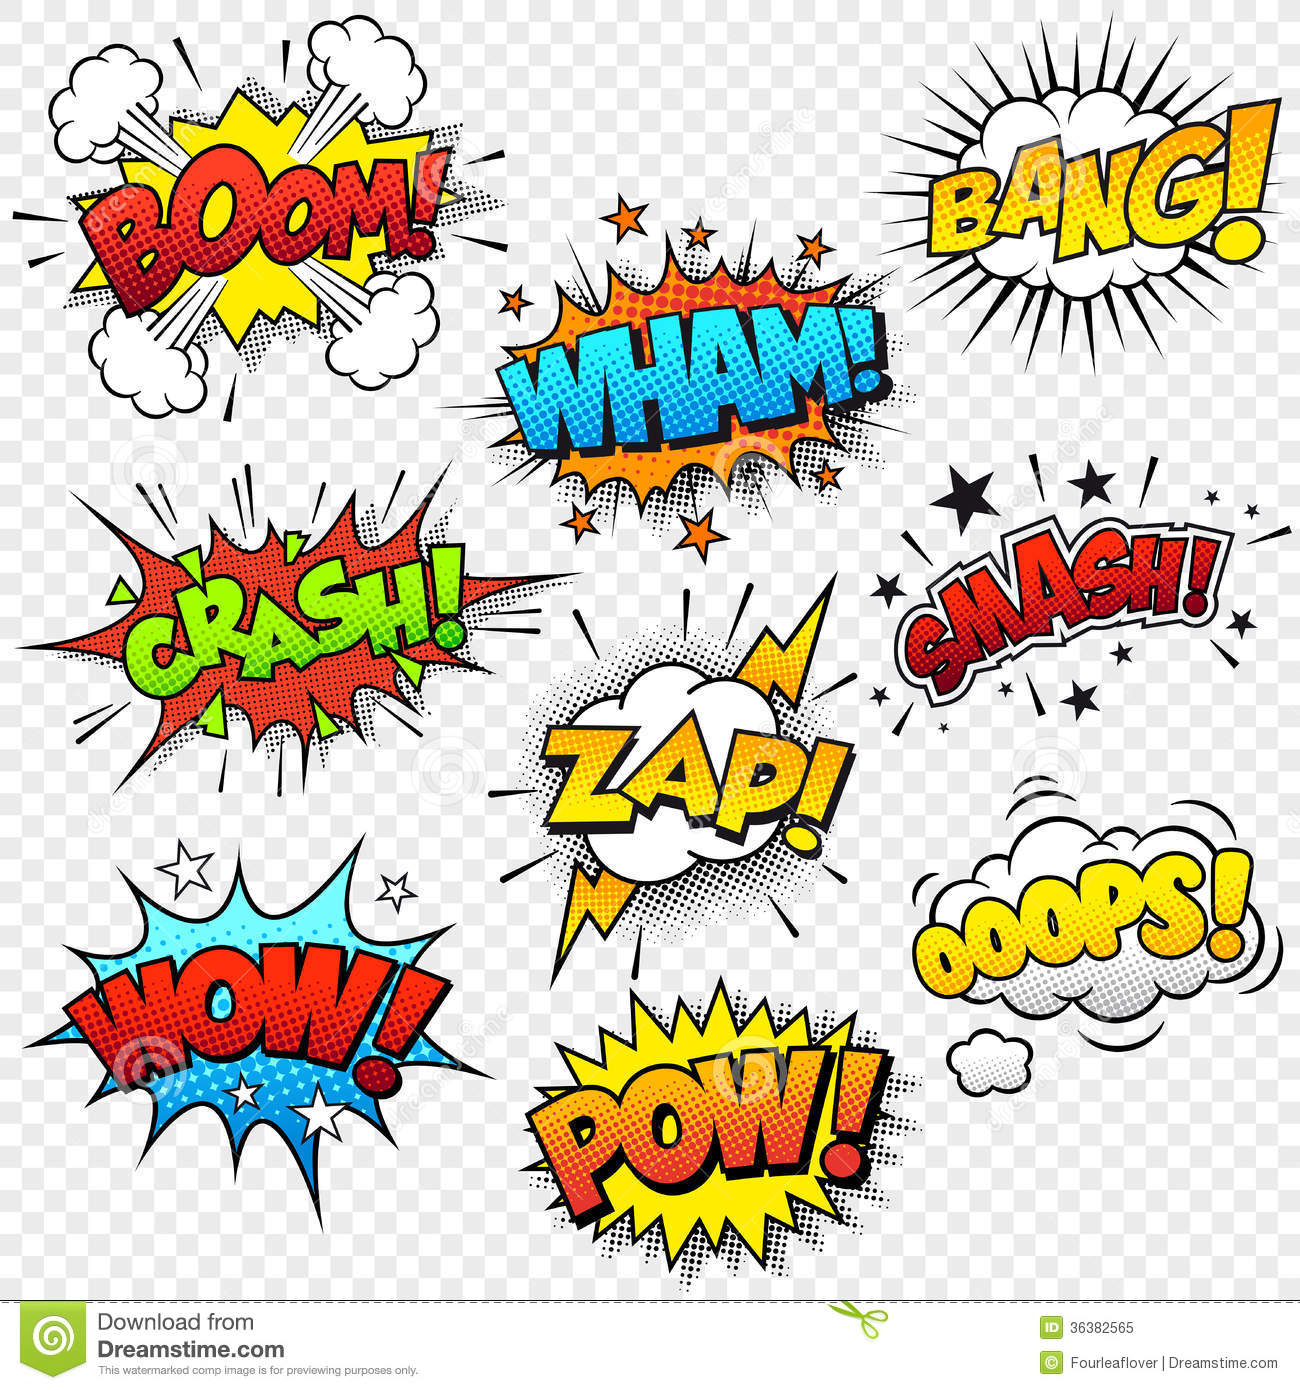 Noise clipart superhero High From Over Quality Over